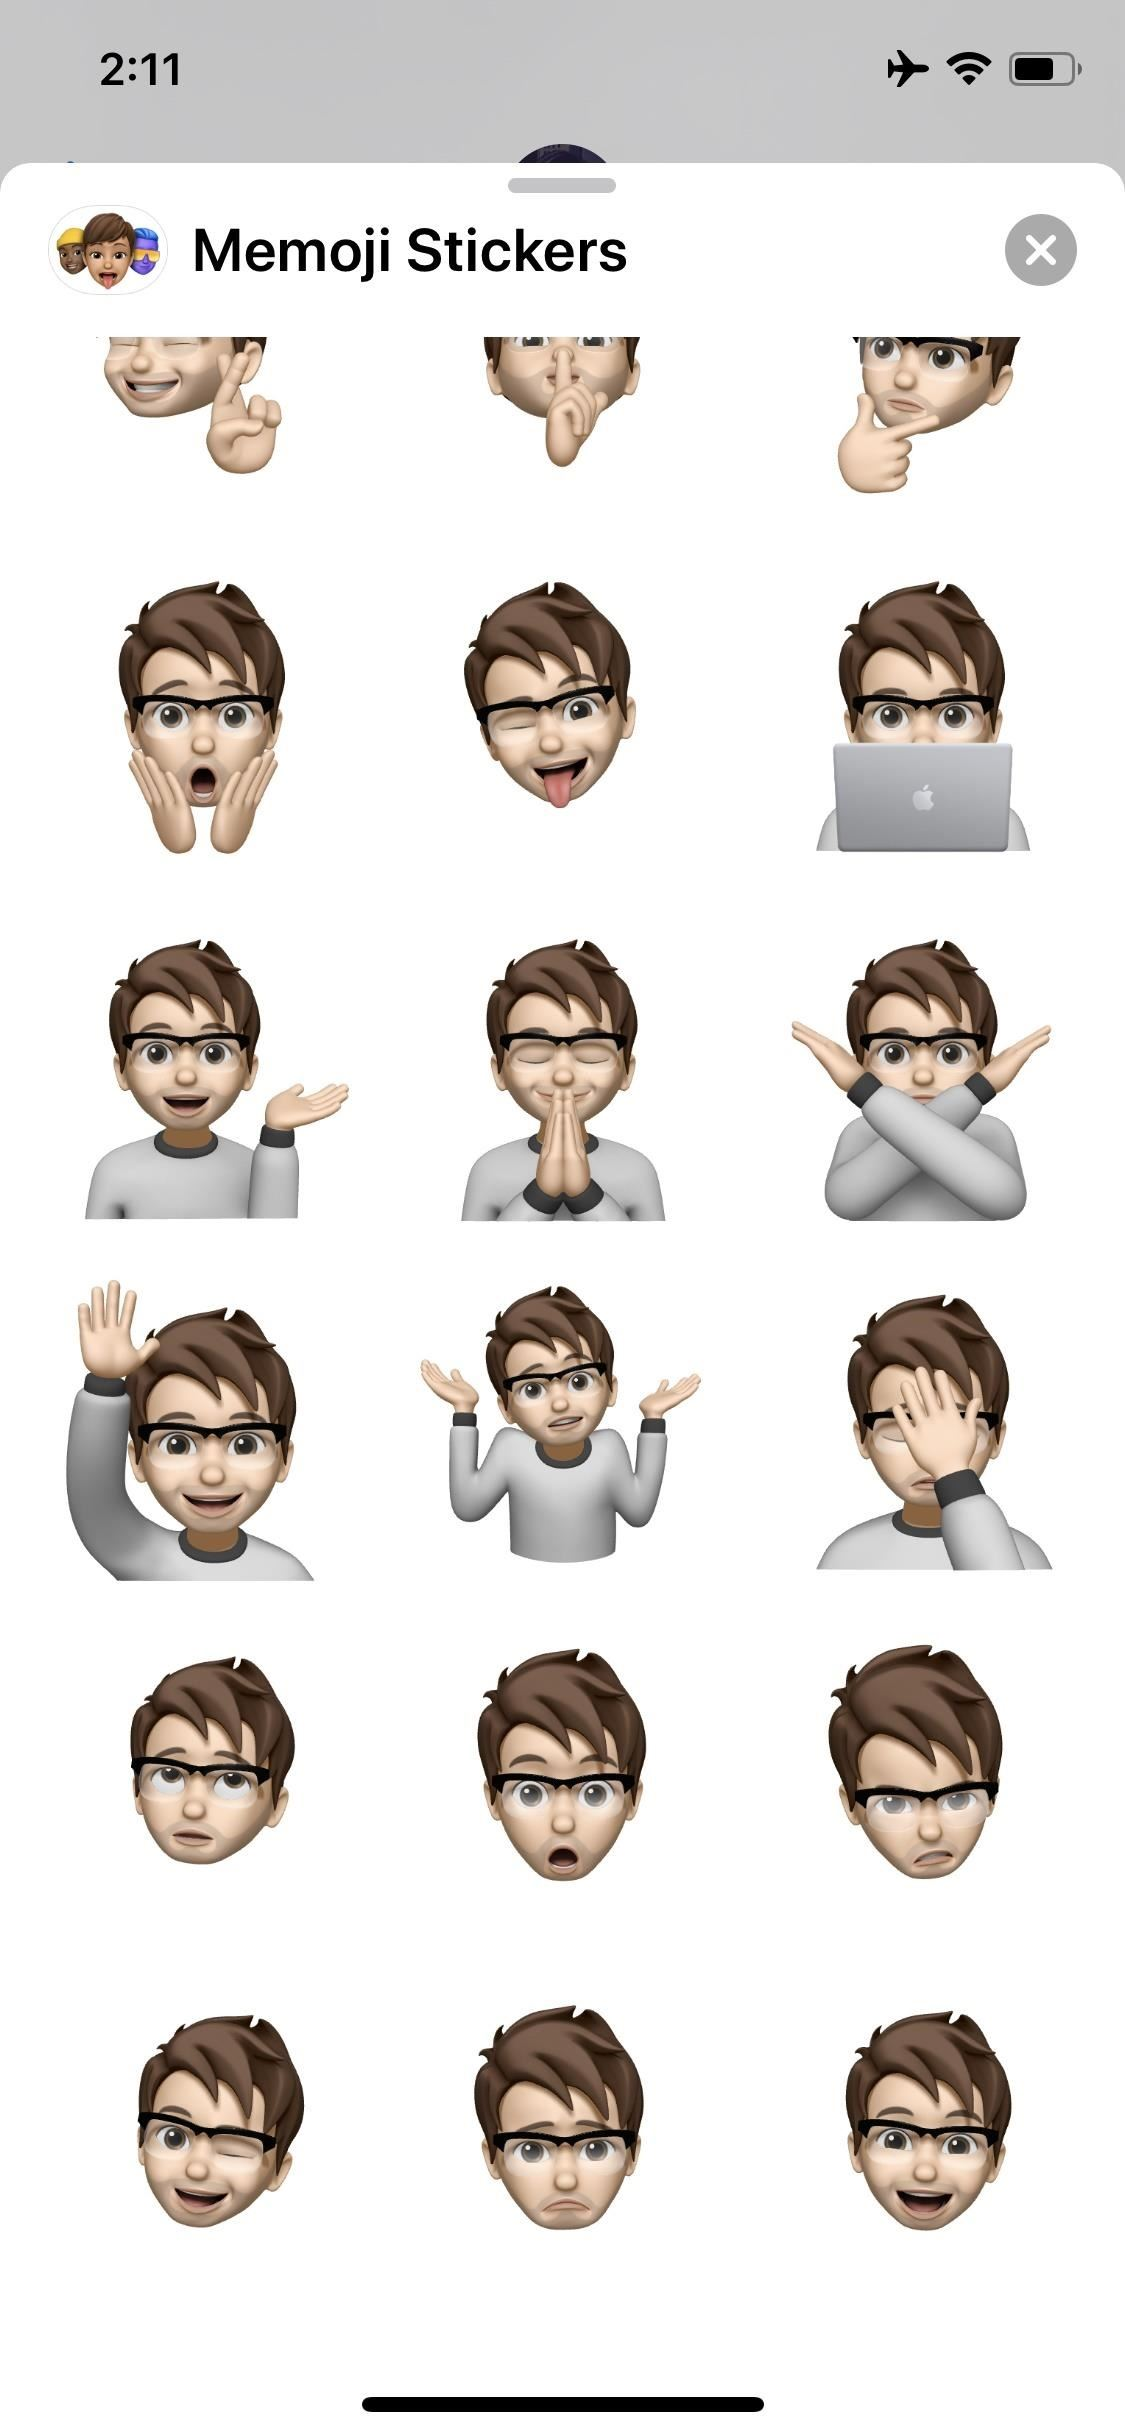 Apple's iOS 13.4 Developer Beta 1 for iPhone Includes New Memoji Stickers & More Convenient Mail Tools